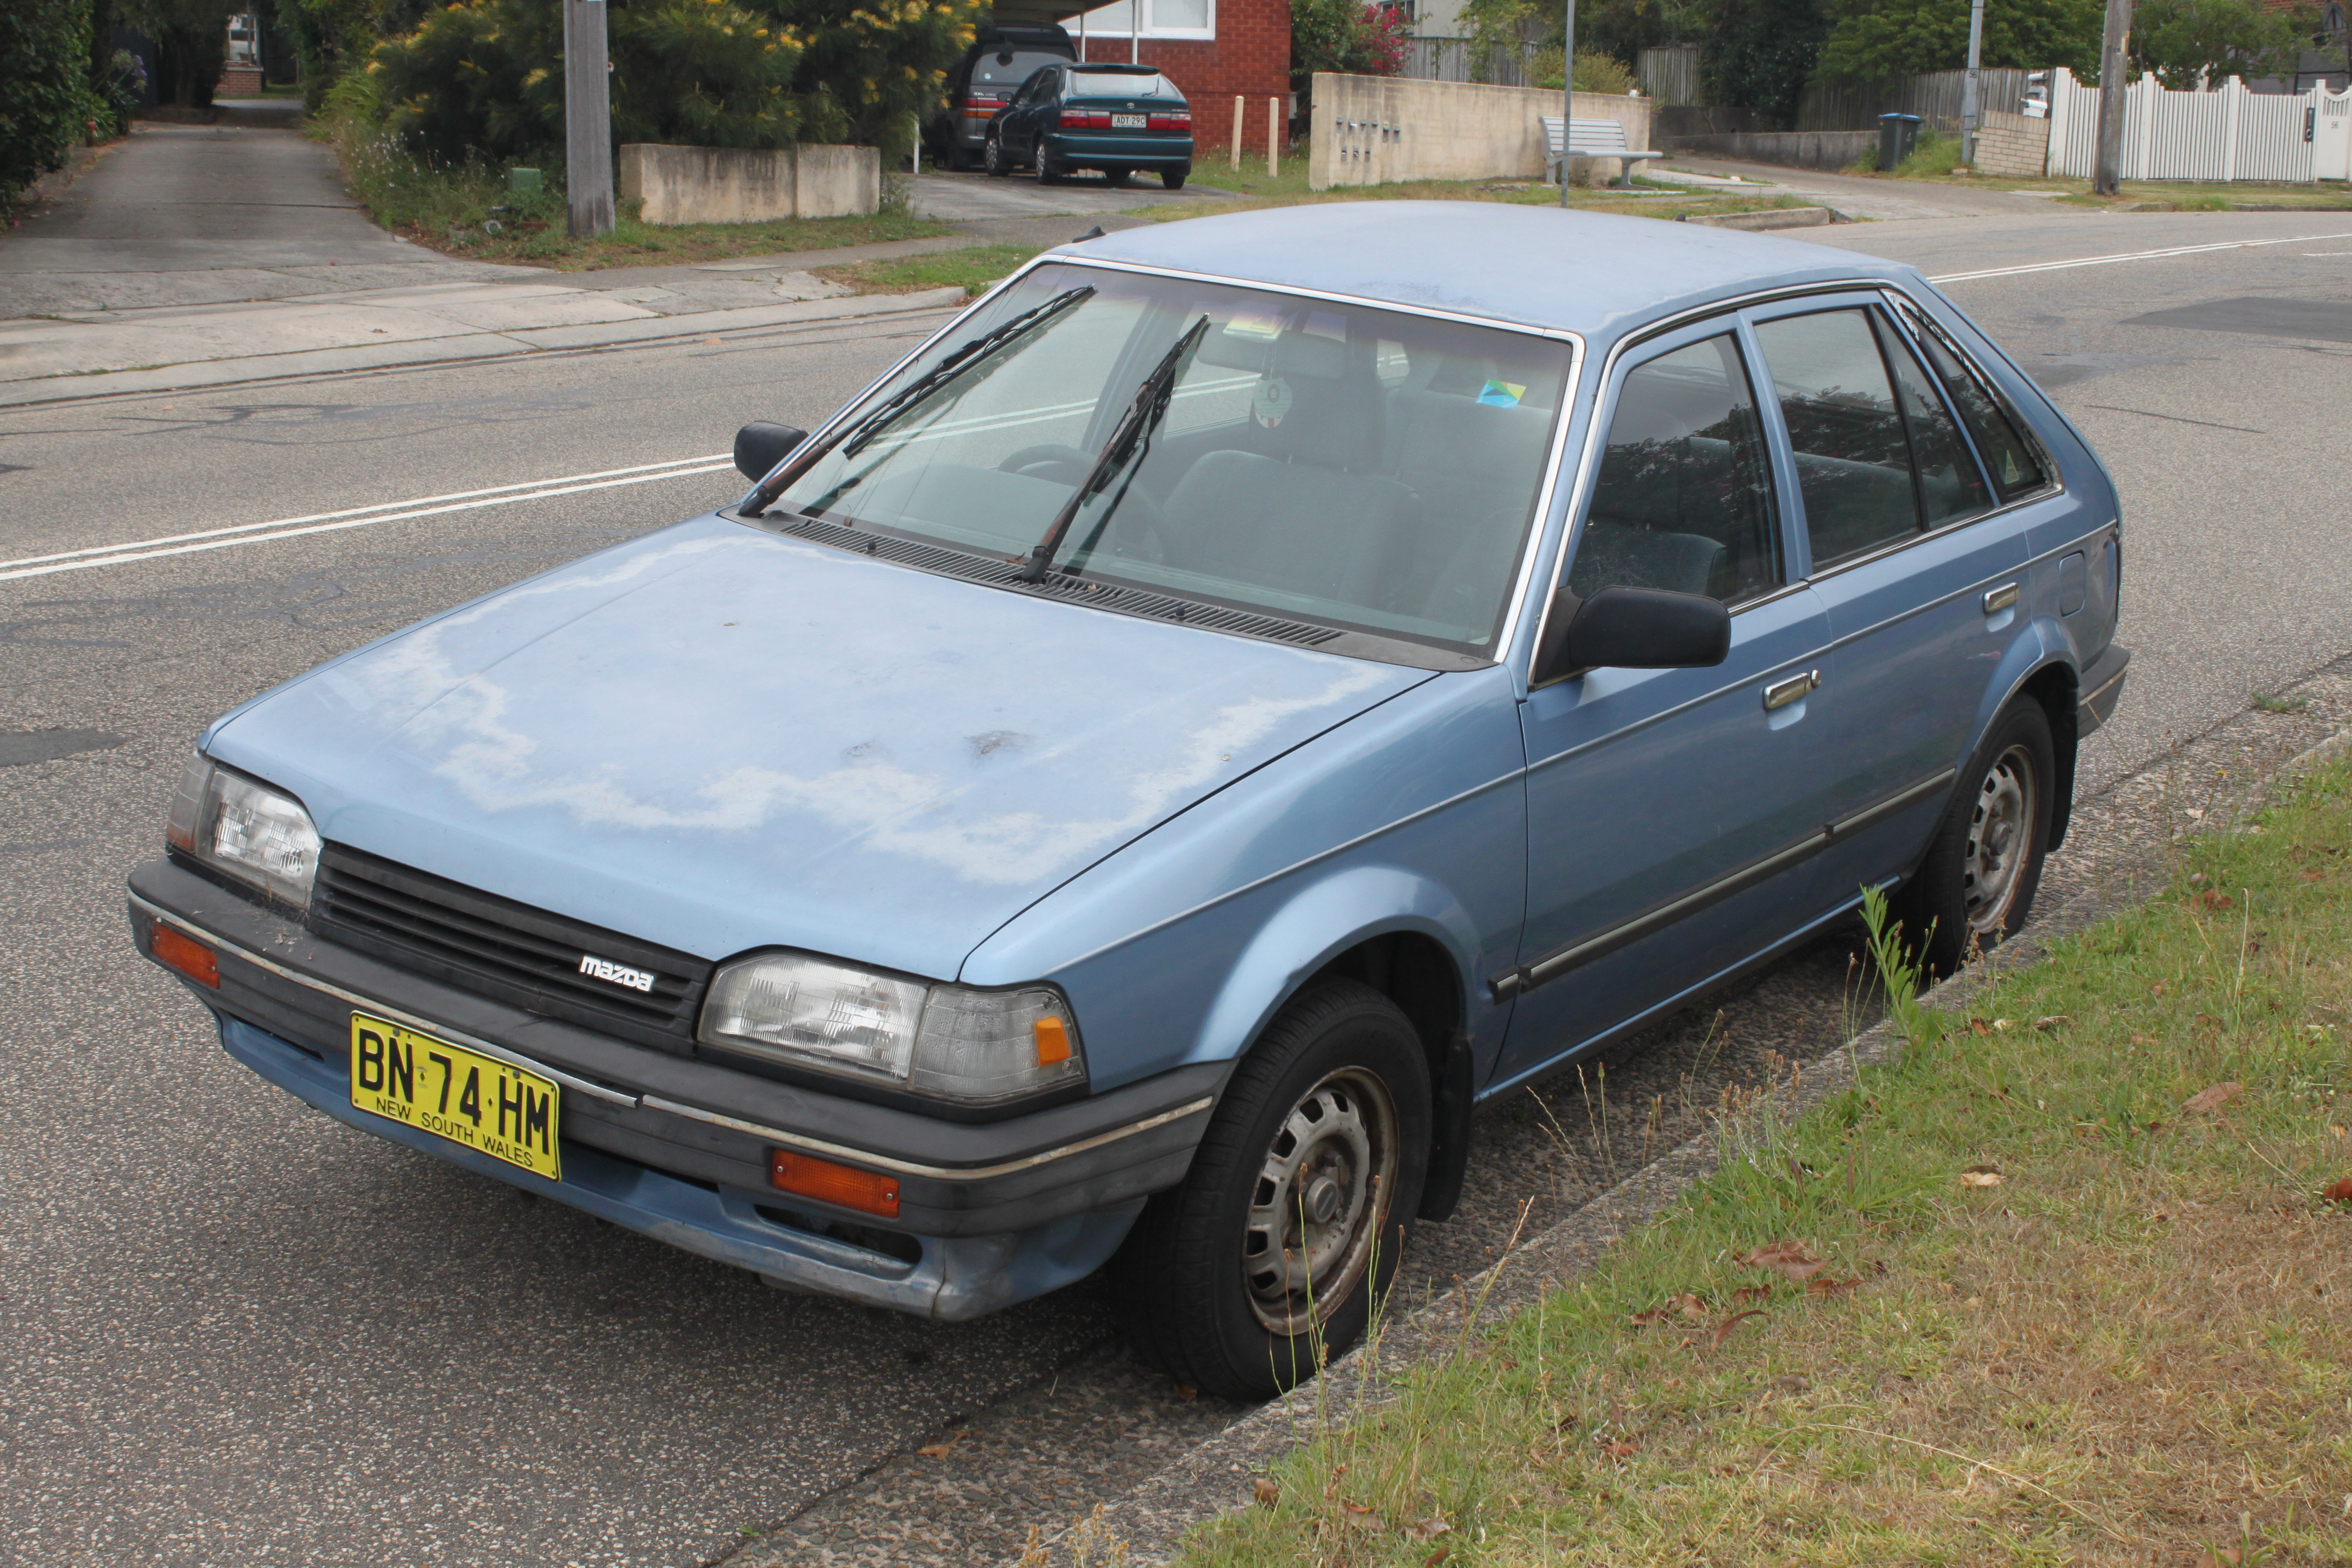 File:1988 Mazda 323 (BF Series 2) Deluxe 5-door hatchback (